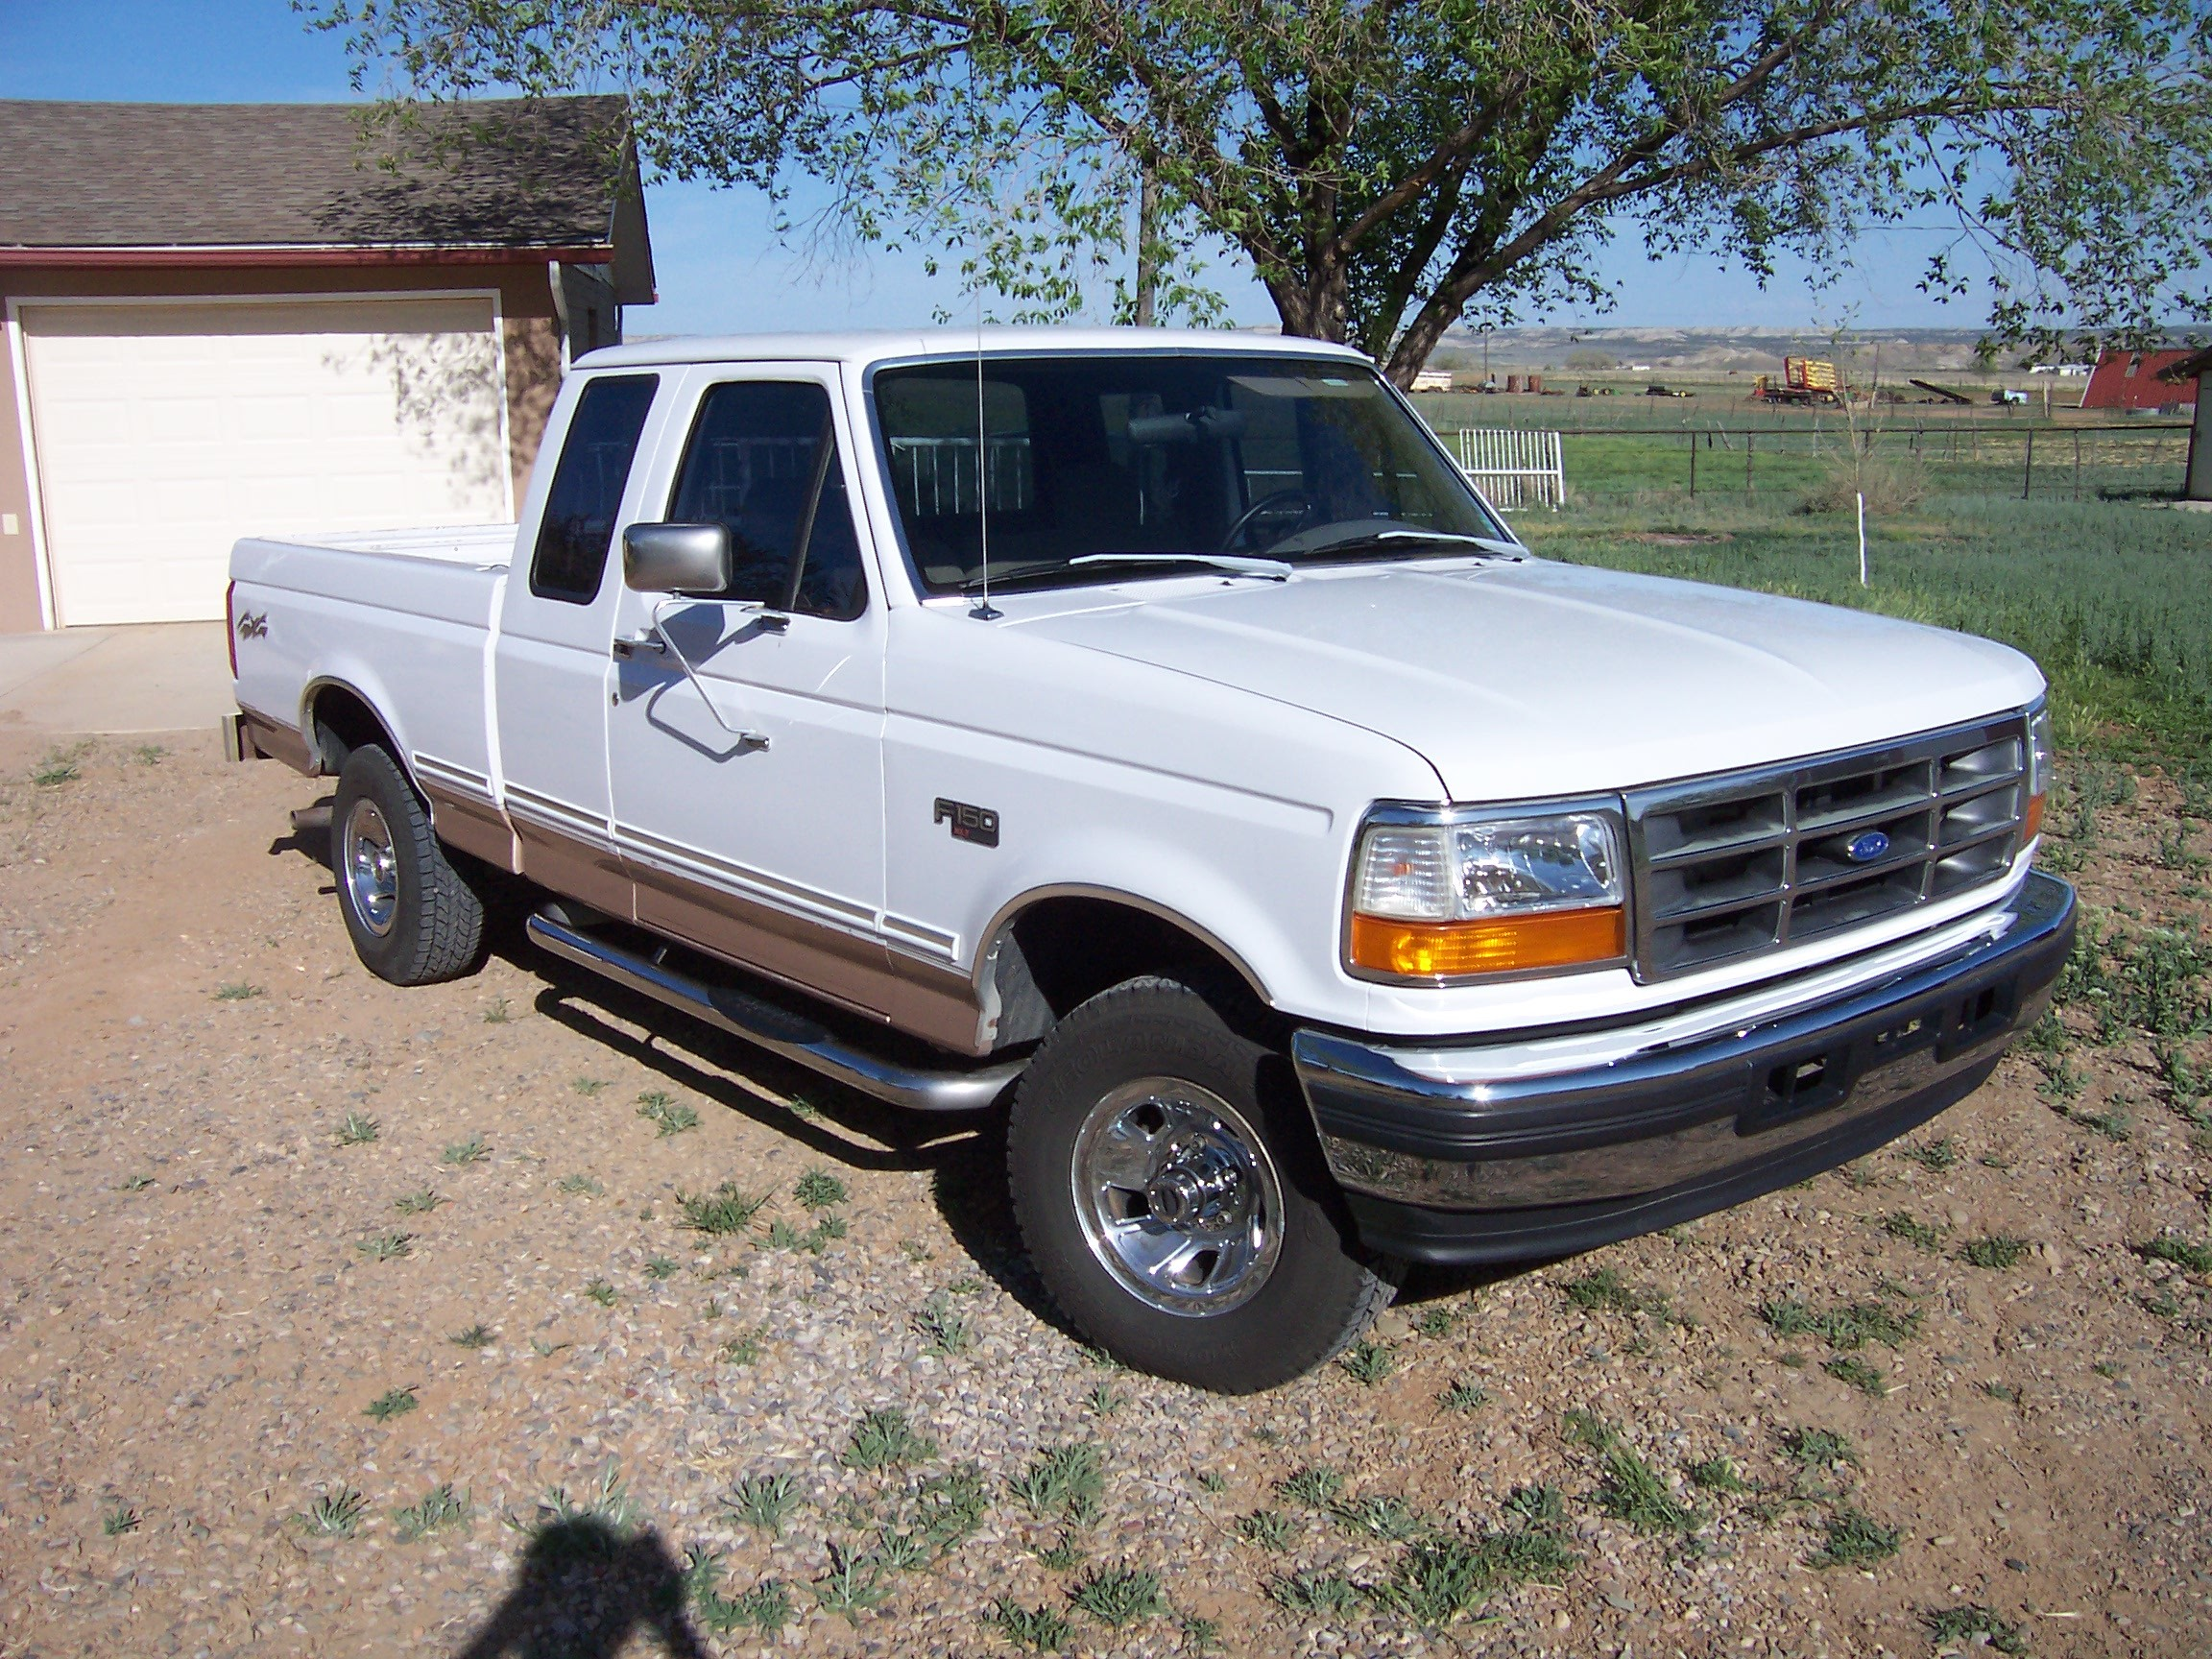 CL302 1996 Ford F150 Super Cab Specs, Photos, Modification